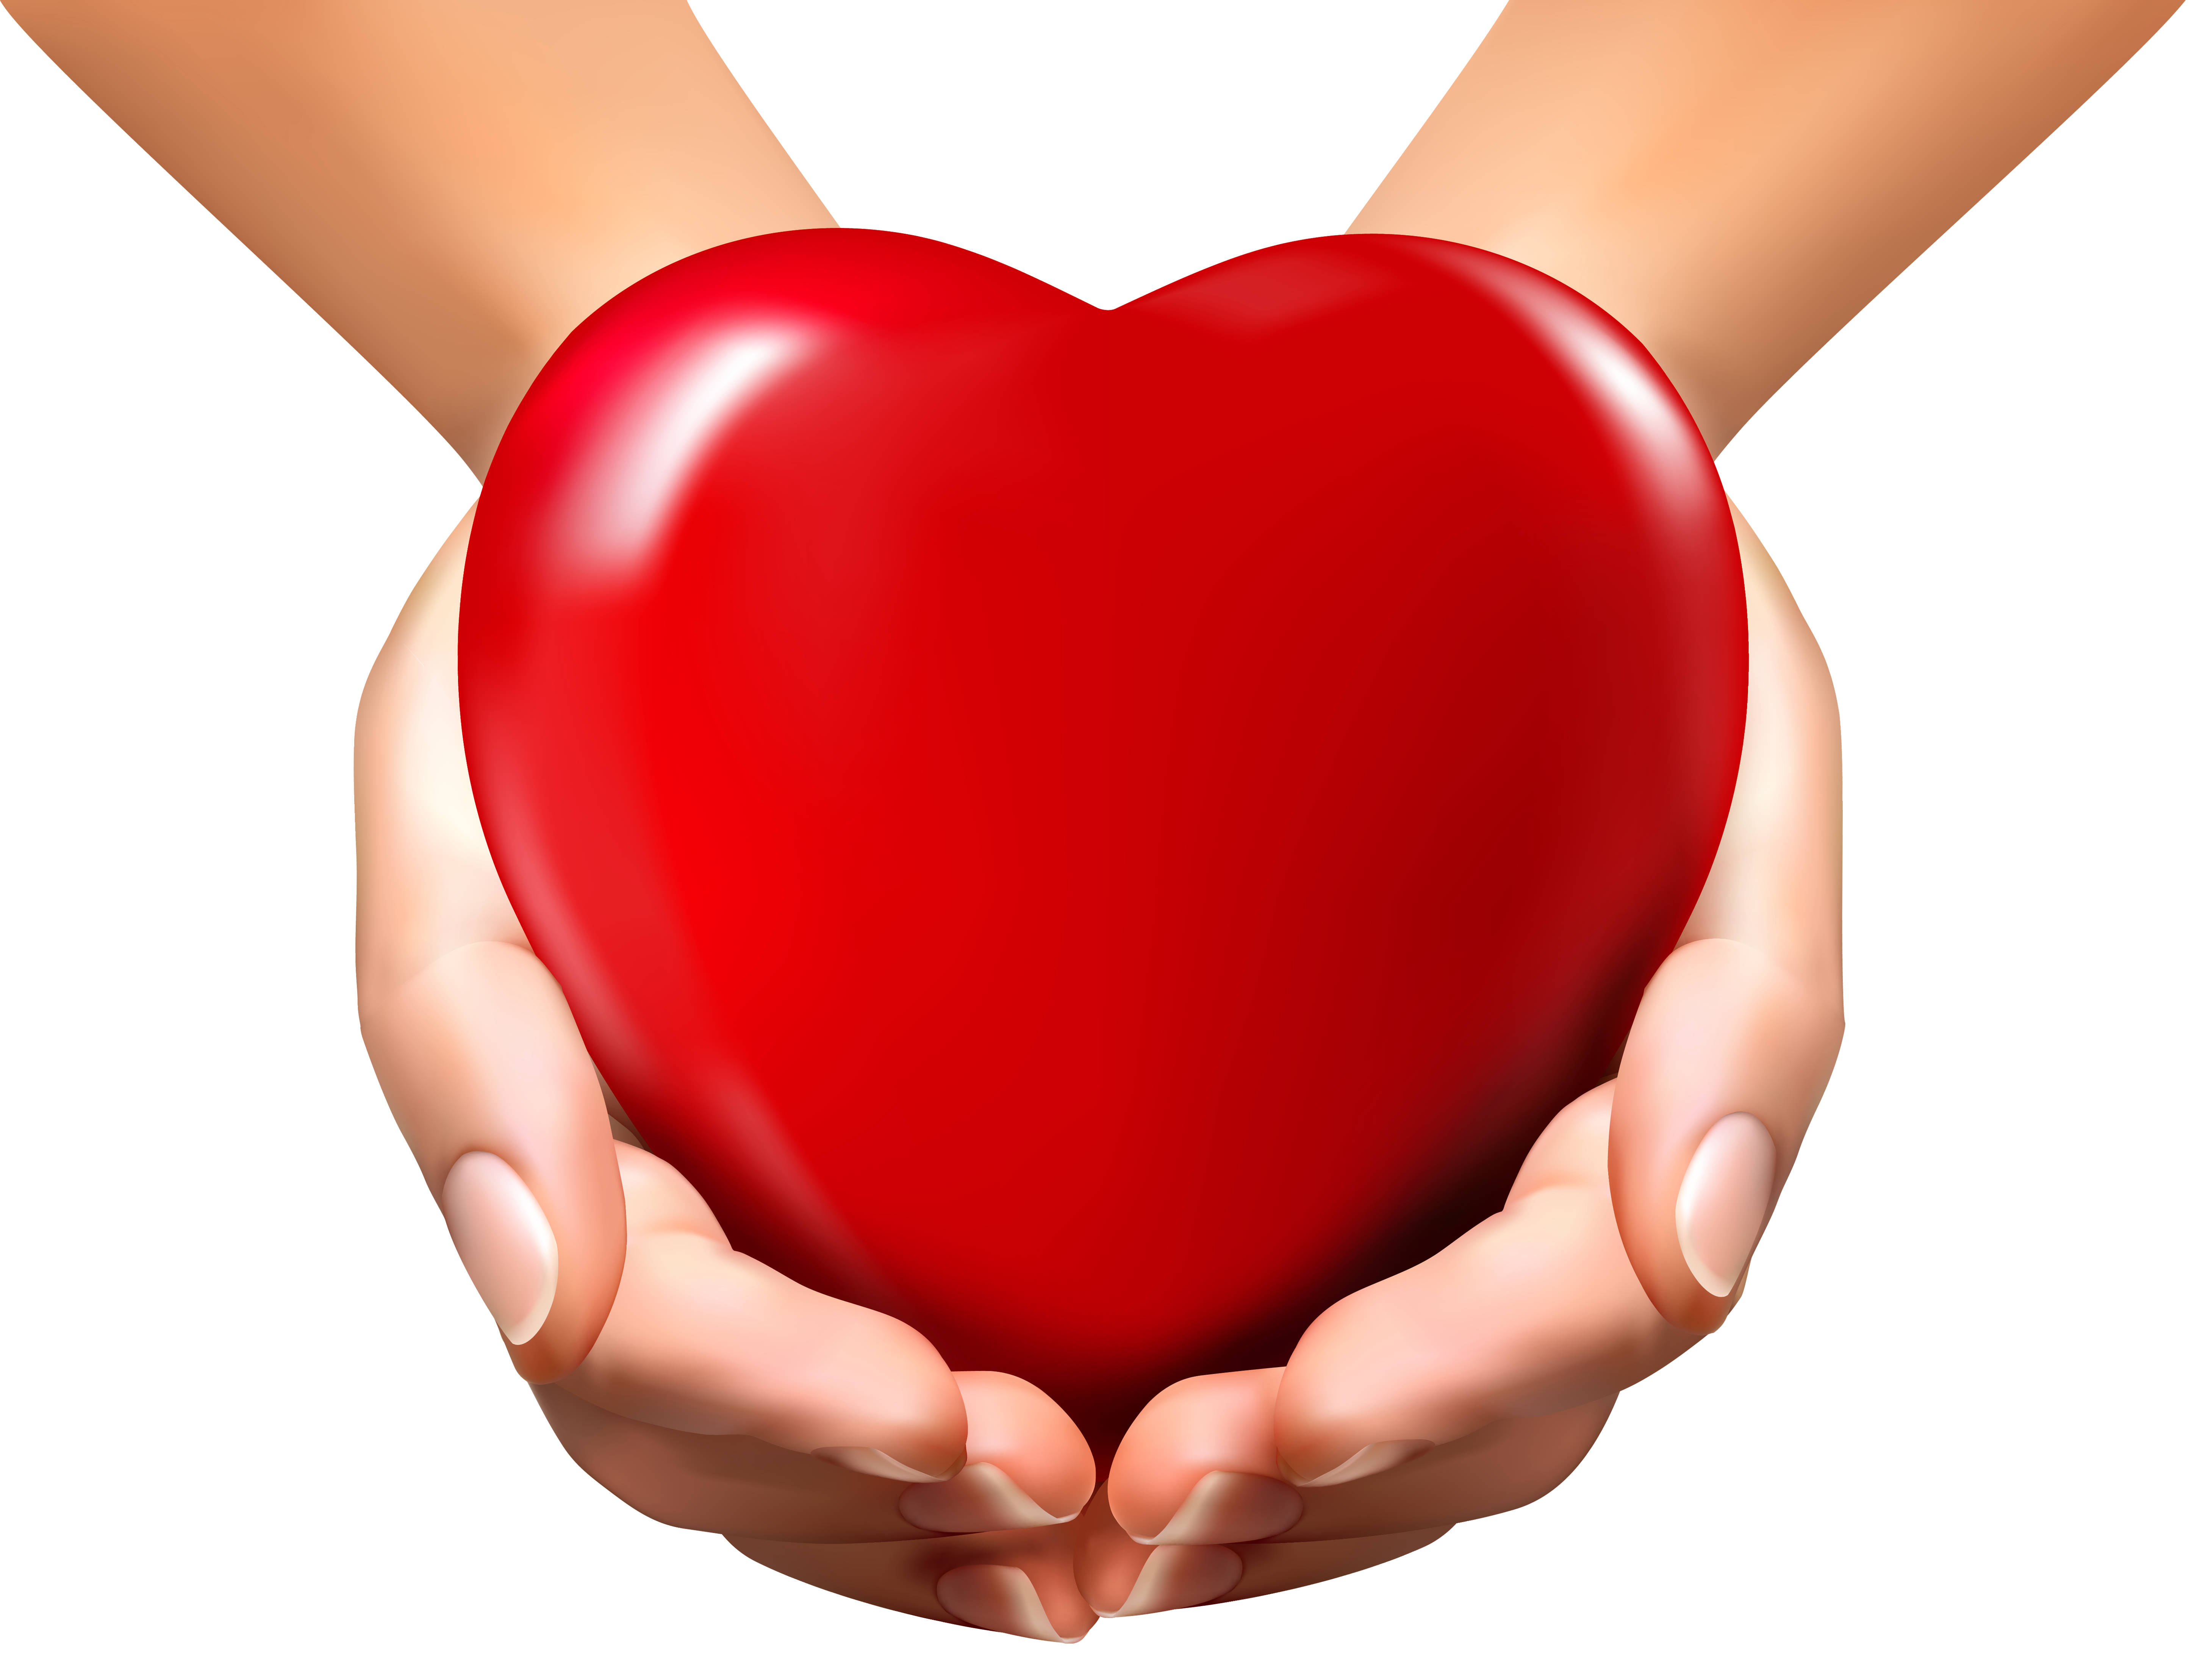 Hand holding lollipop png. Online hands with heart